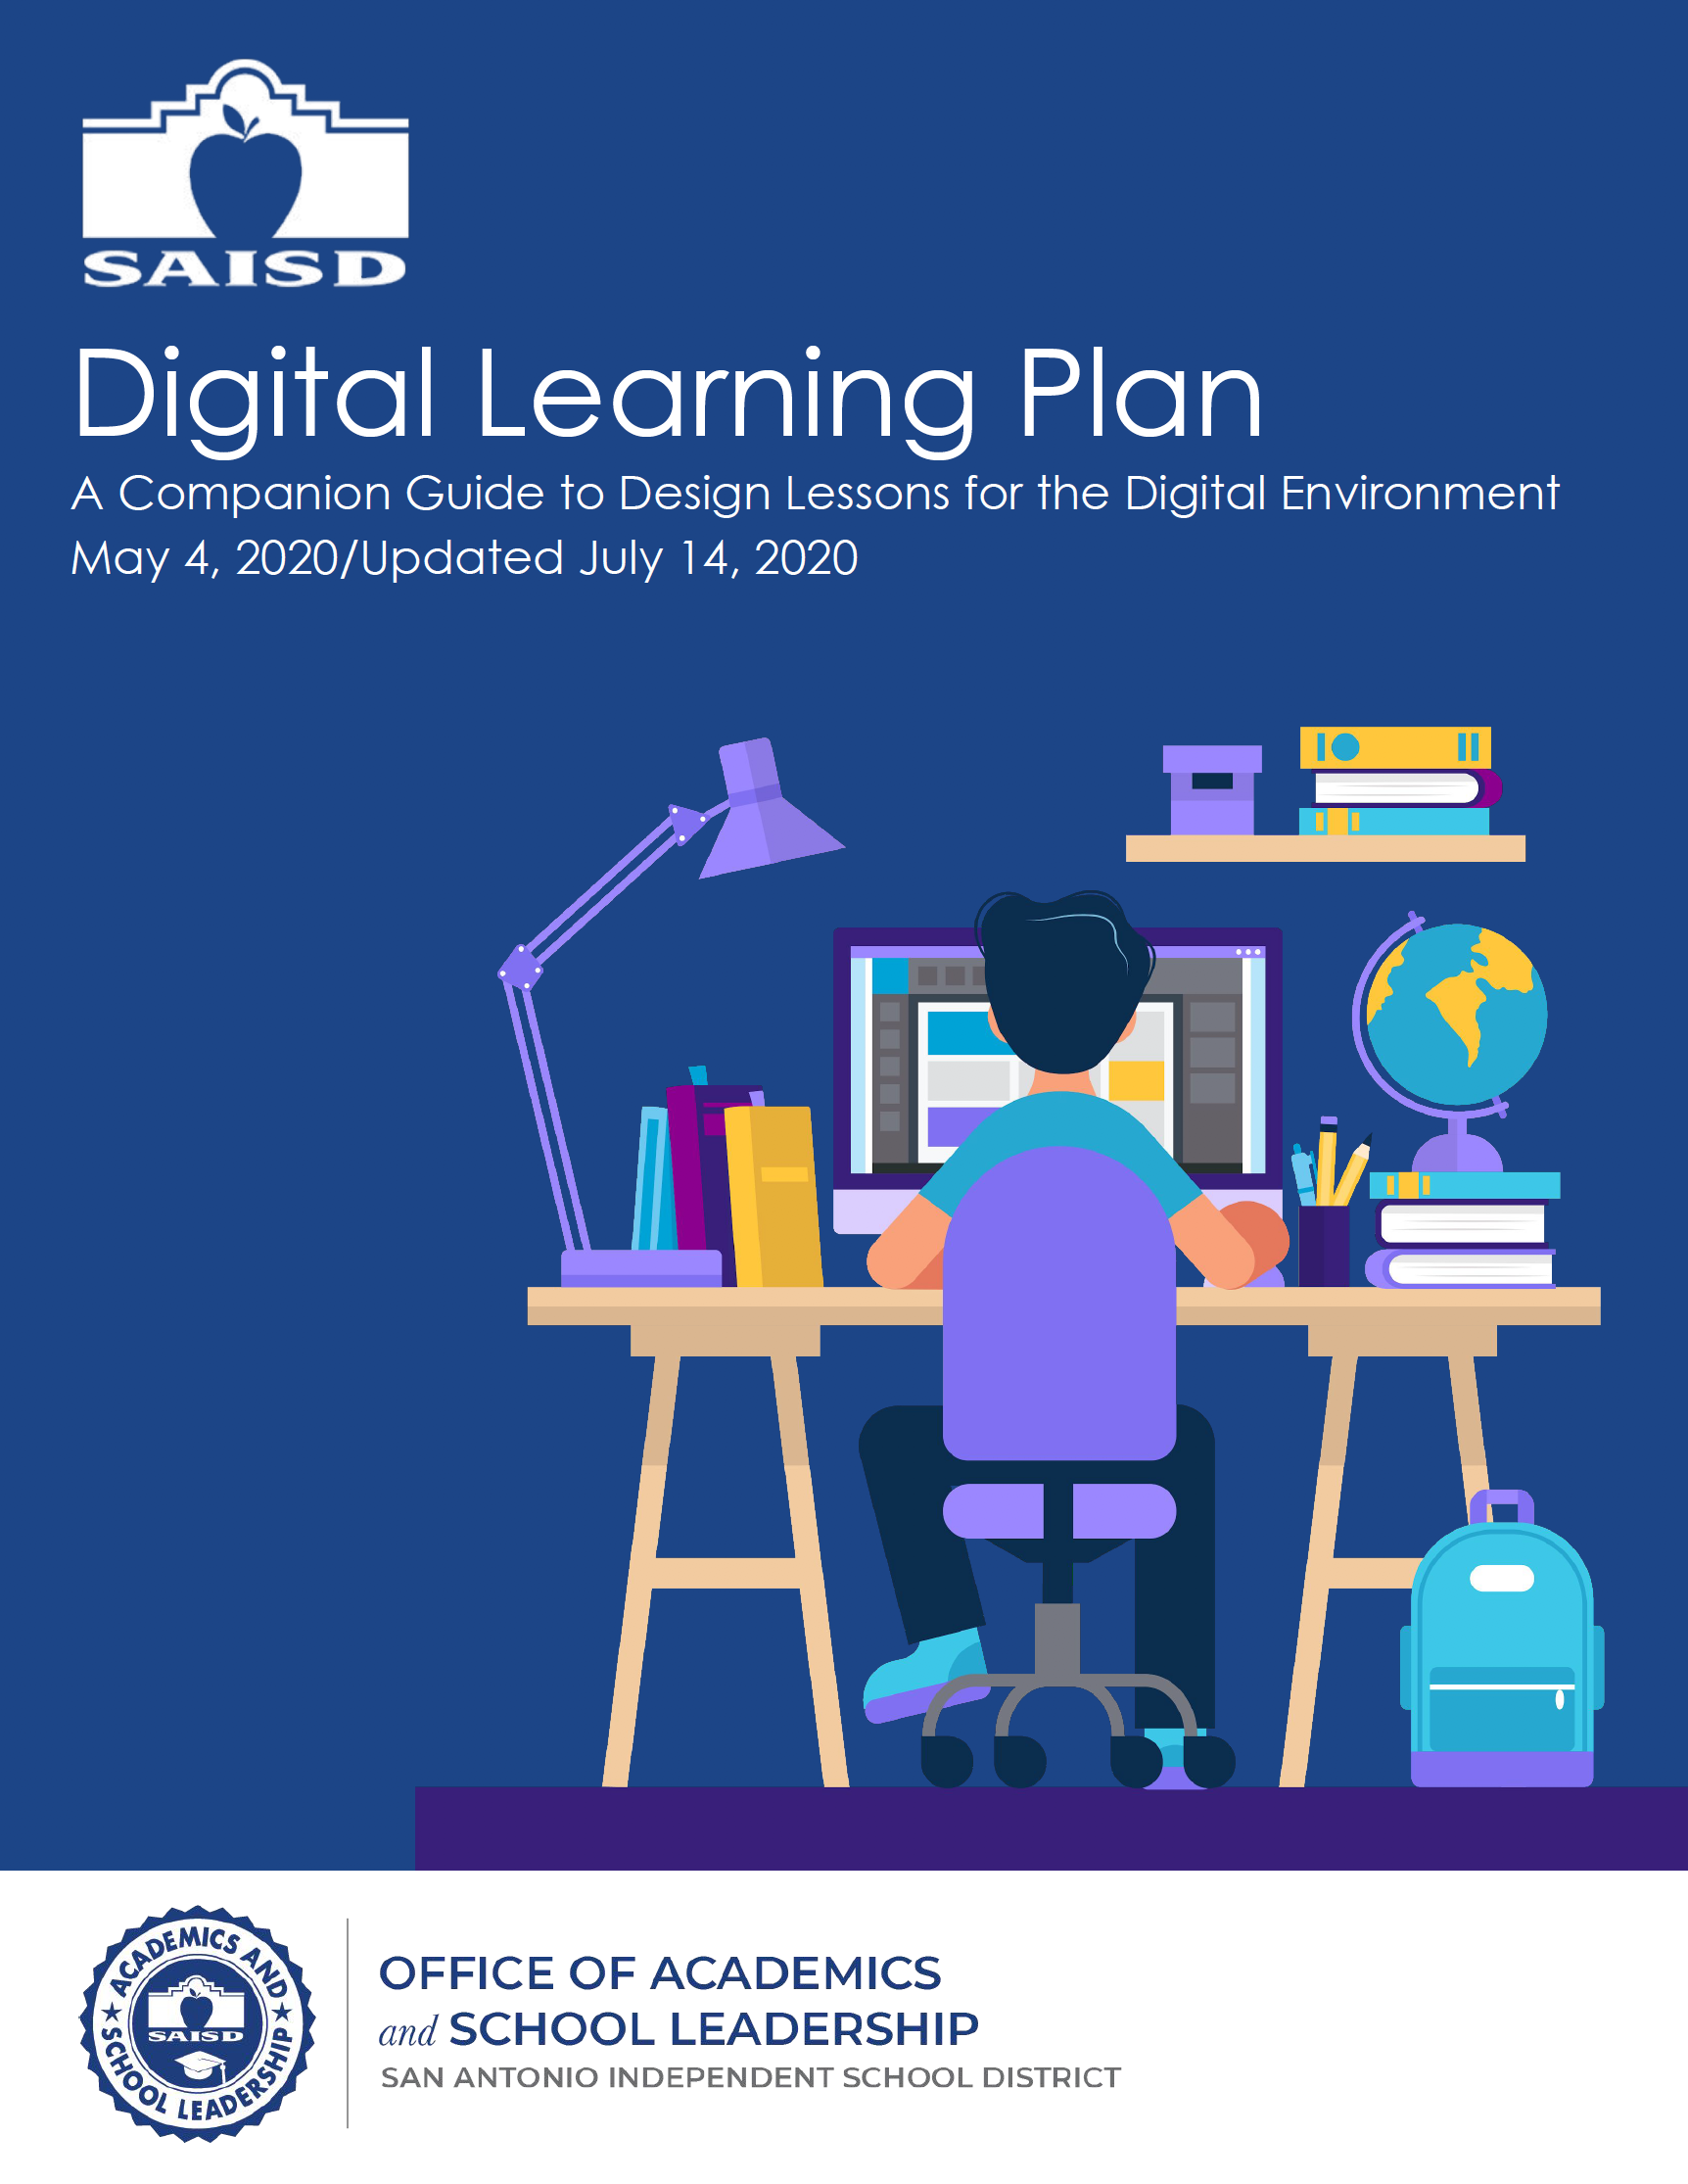 SAISD Digital Learning Plan